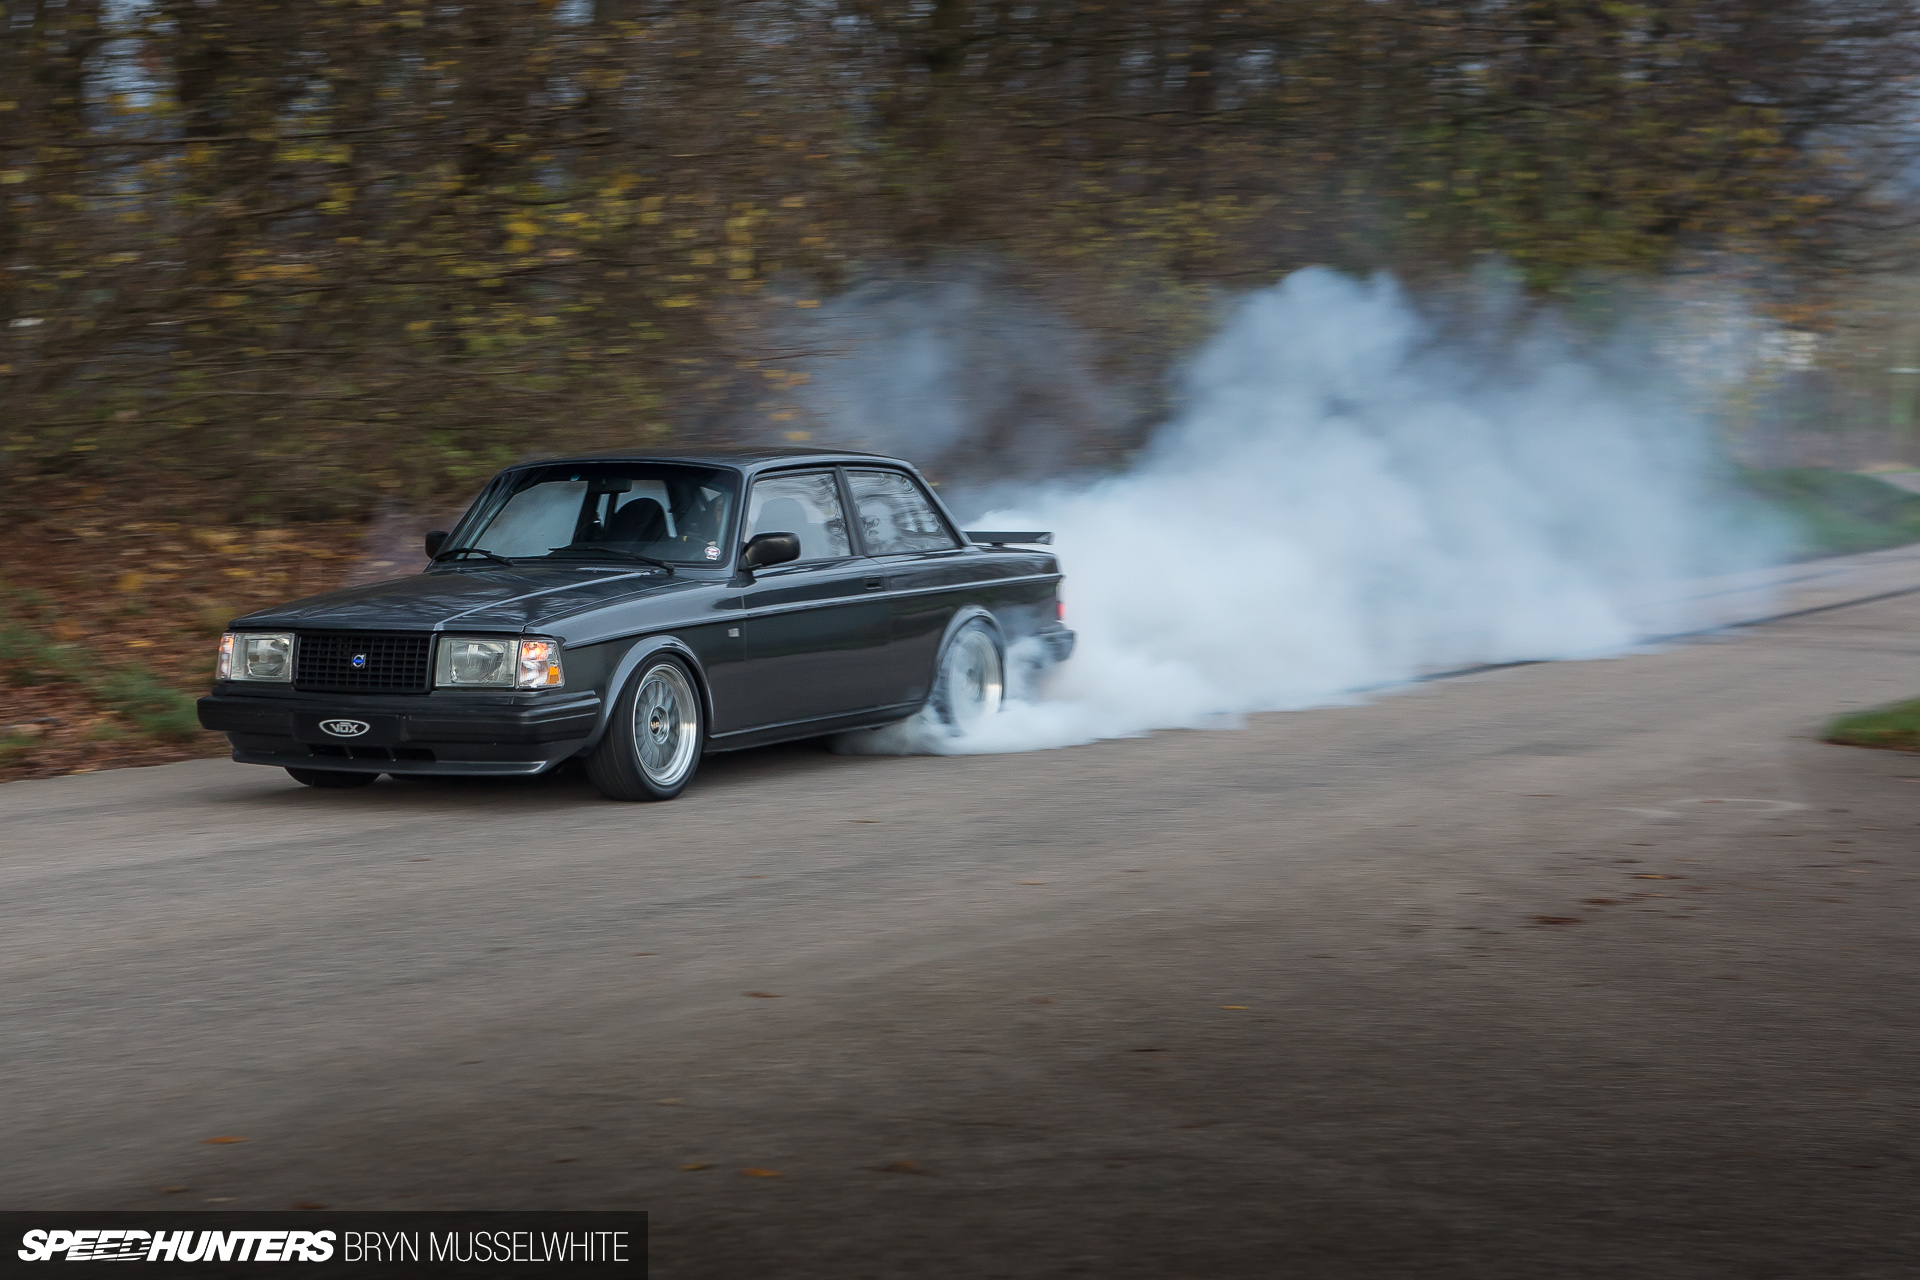 Volvo 960 Wagon For Sale >> Turbo Bricking It: Riding In A 740hp Volvo - Speedhunters